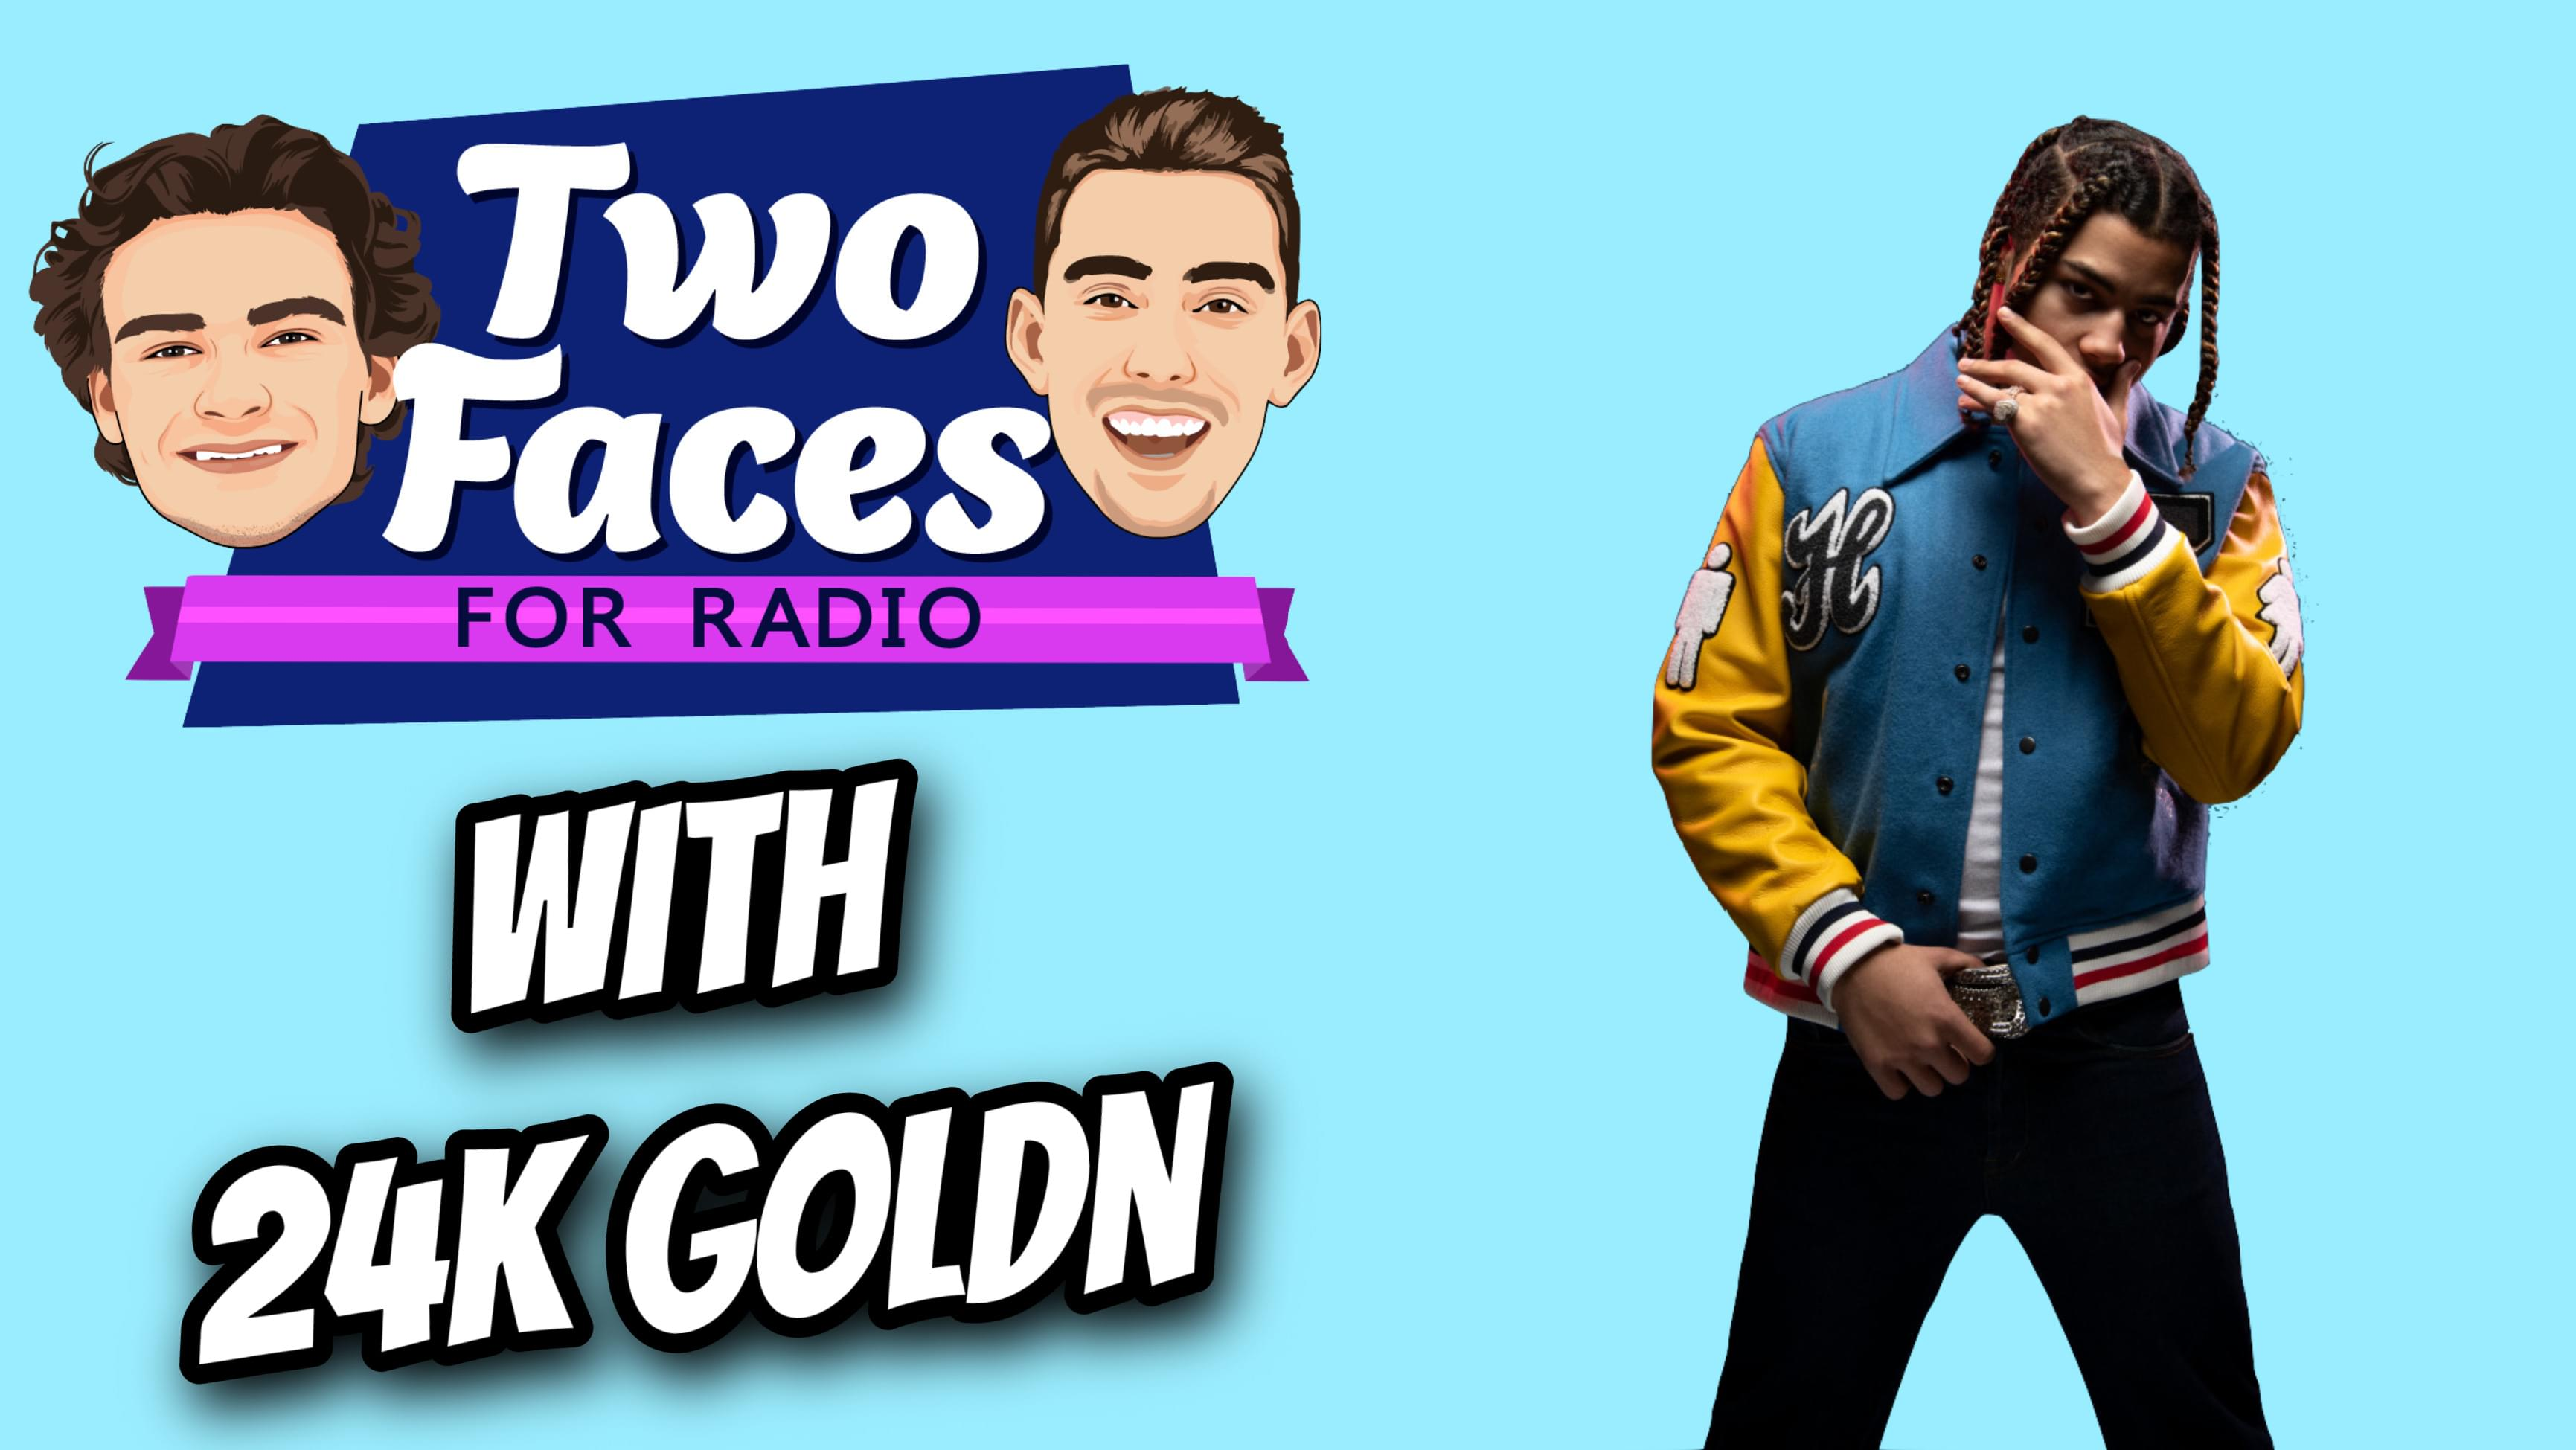 24K Goldn On The 'Two Faces For Radio' Podcast [WATCH]